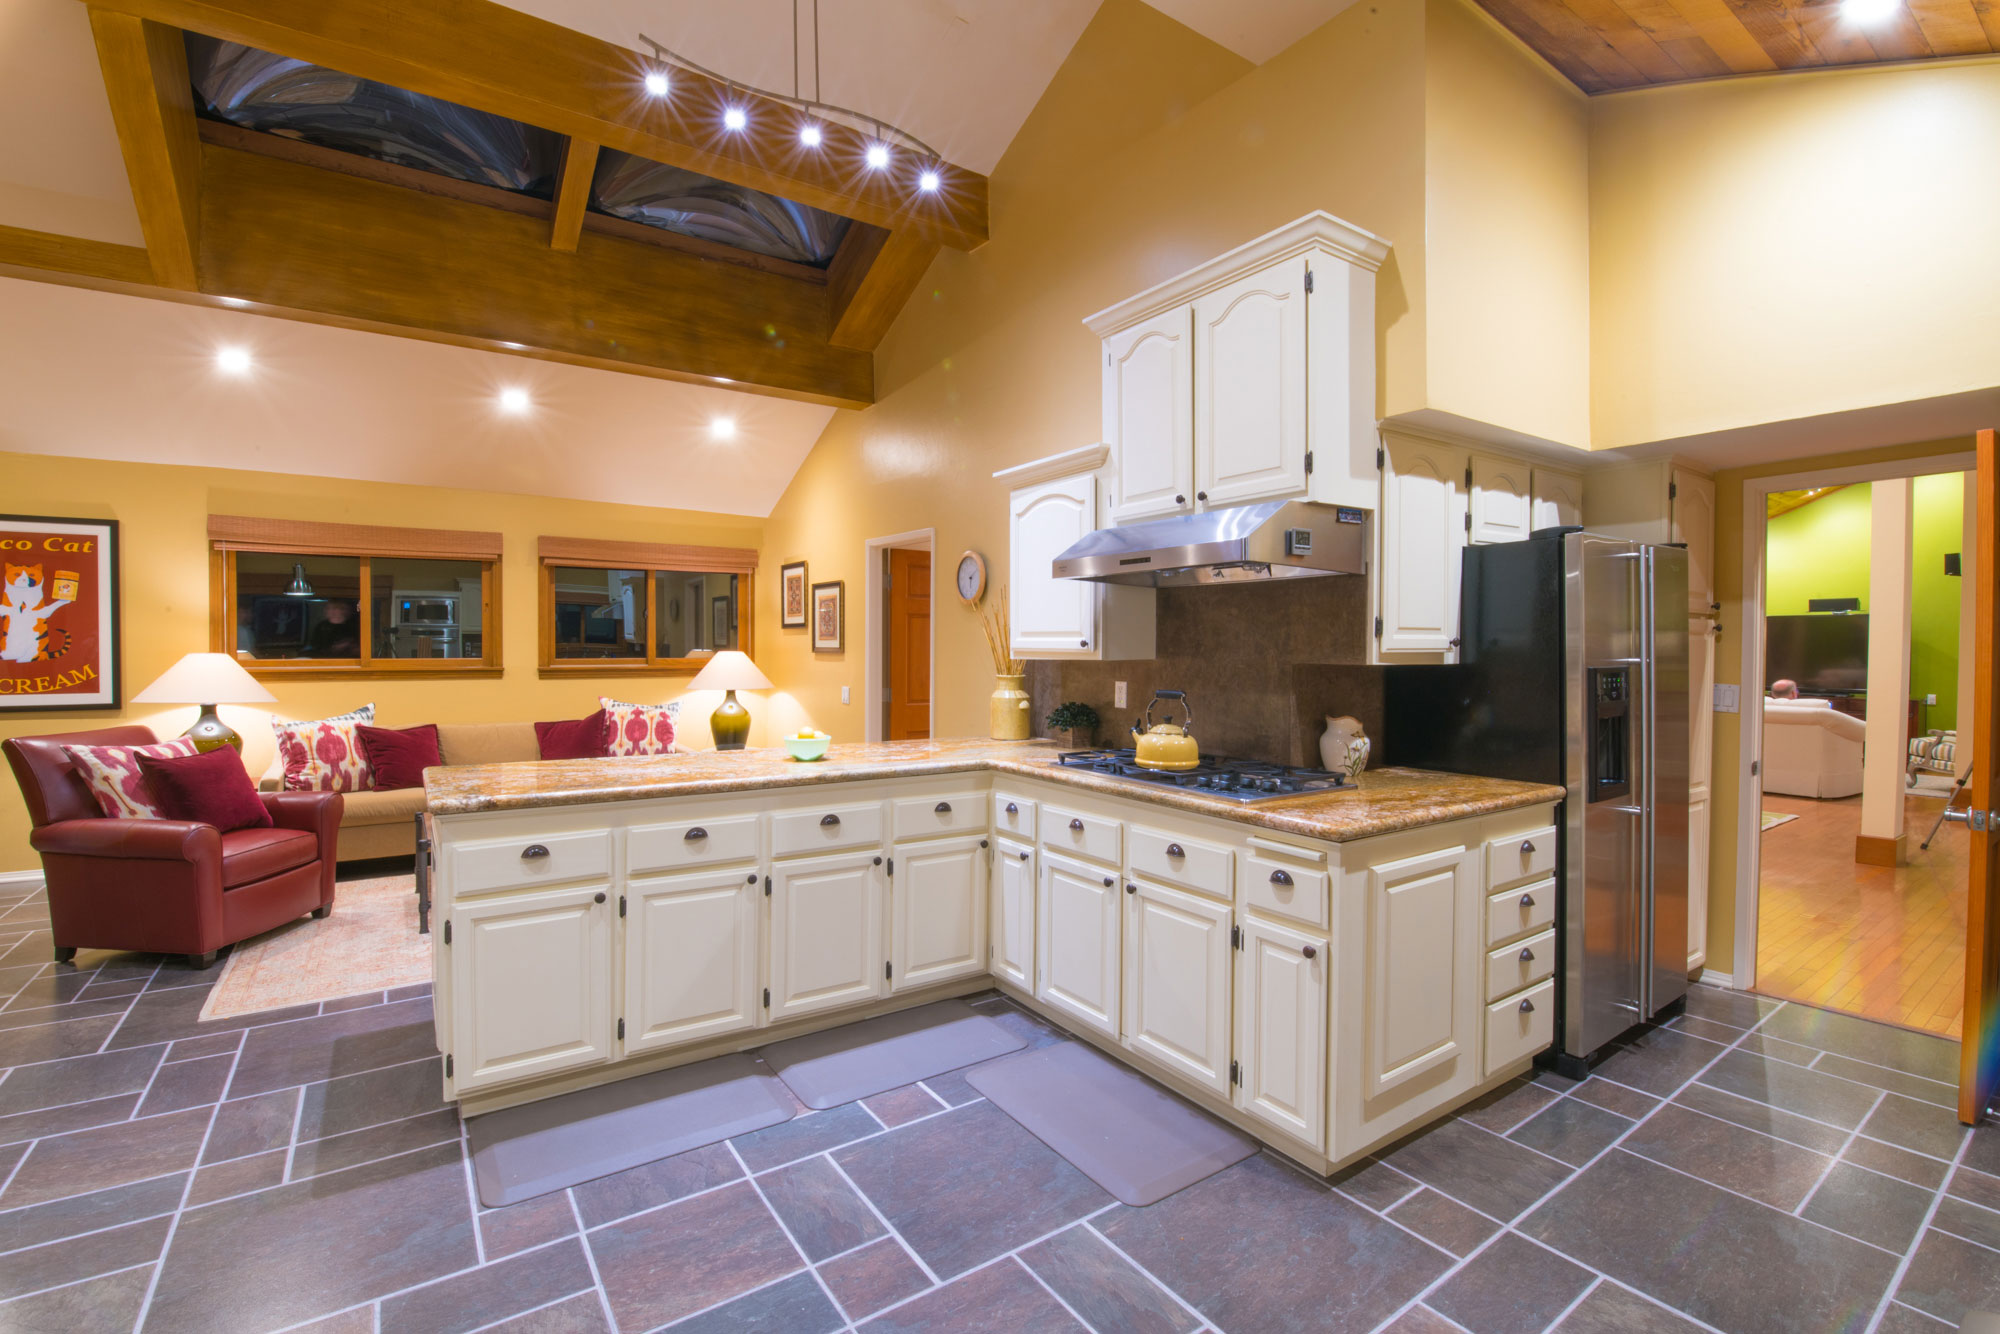 real-estate-phography-kitchen.jpg